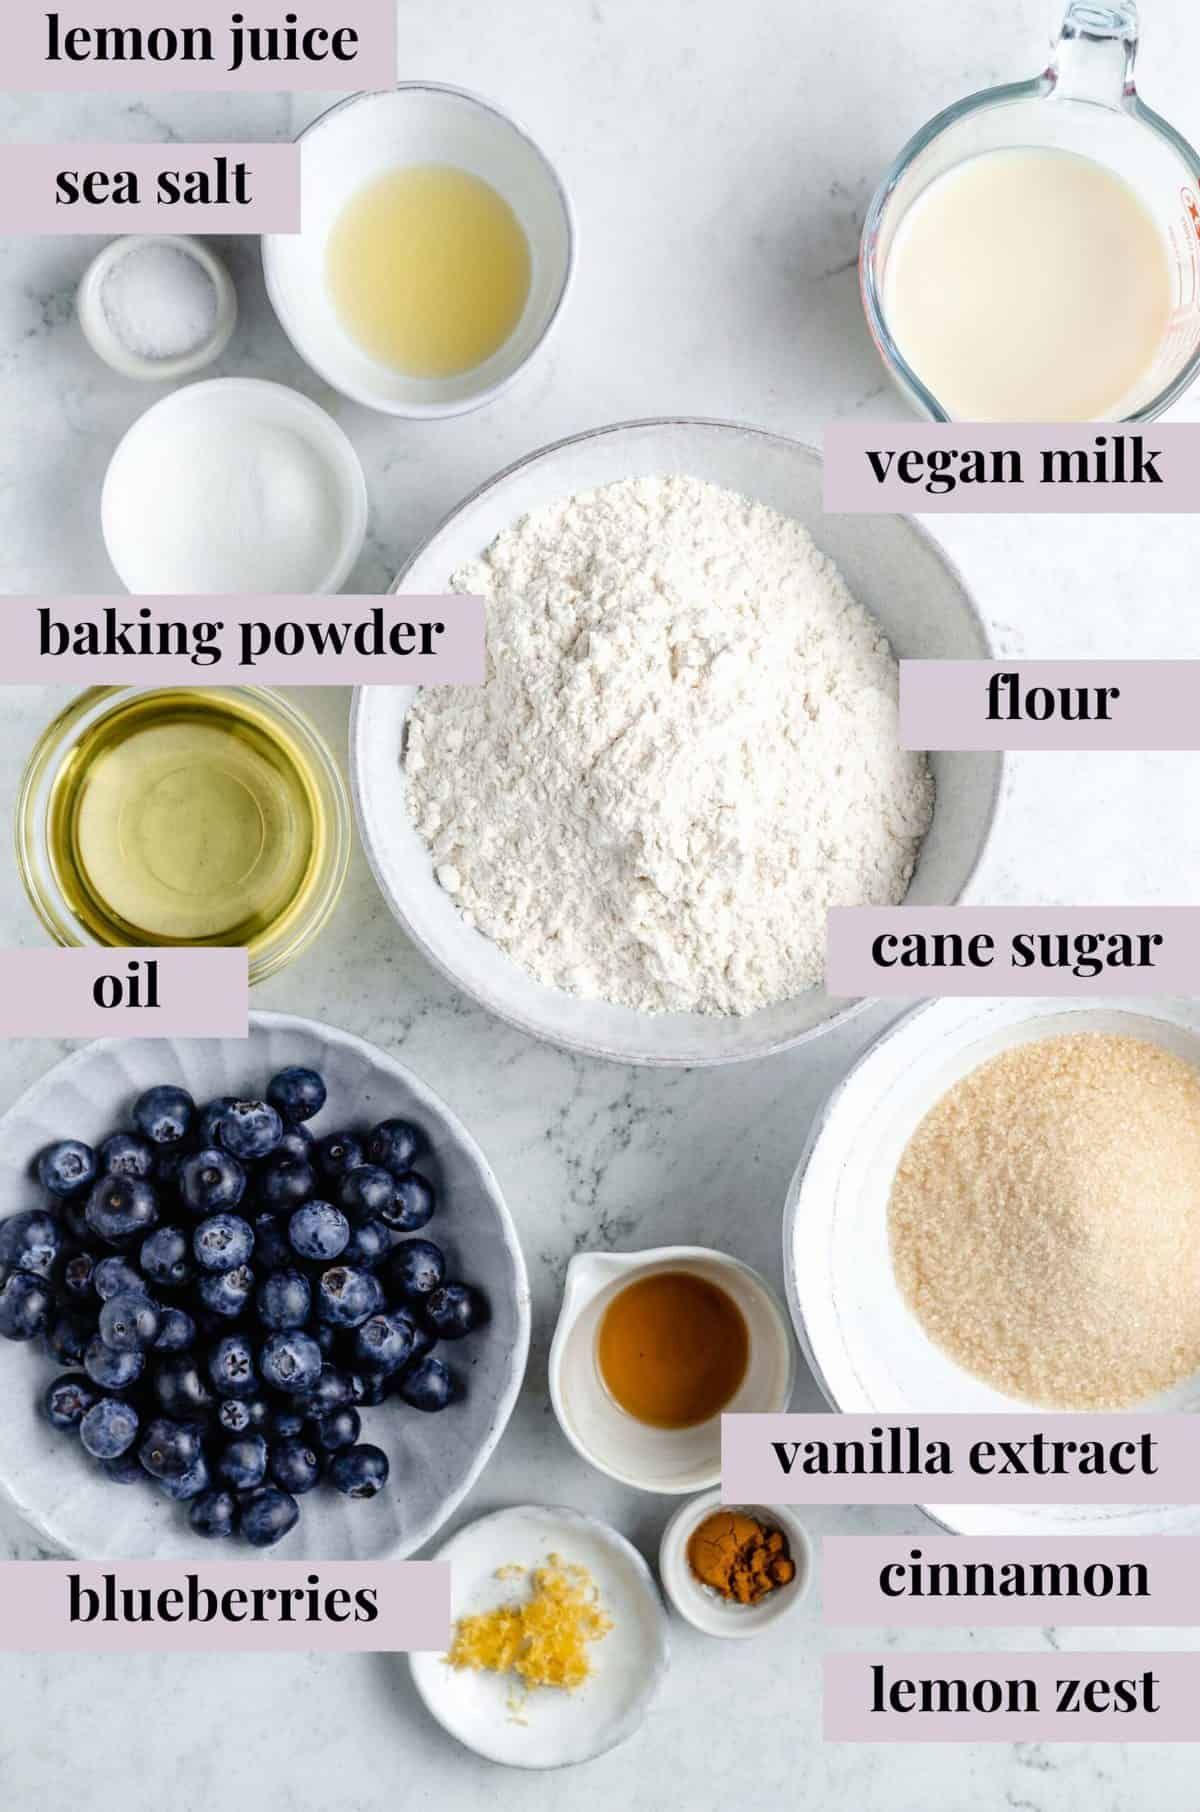 Ingredients for vegan blueberry muffins.